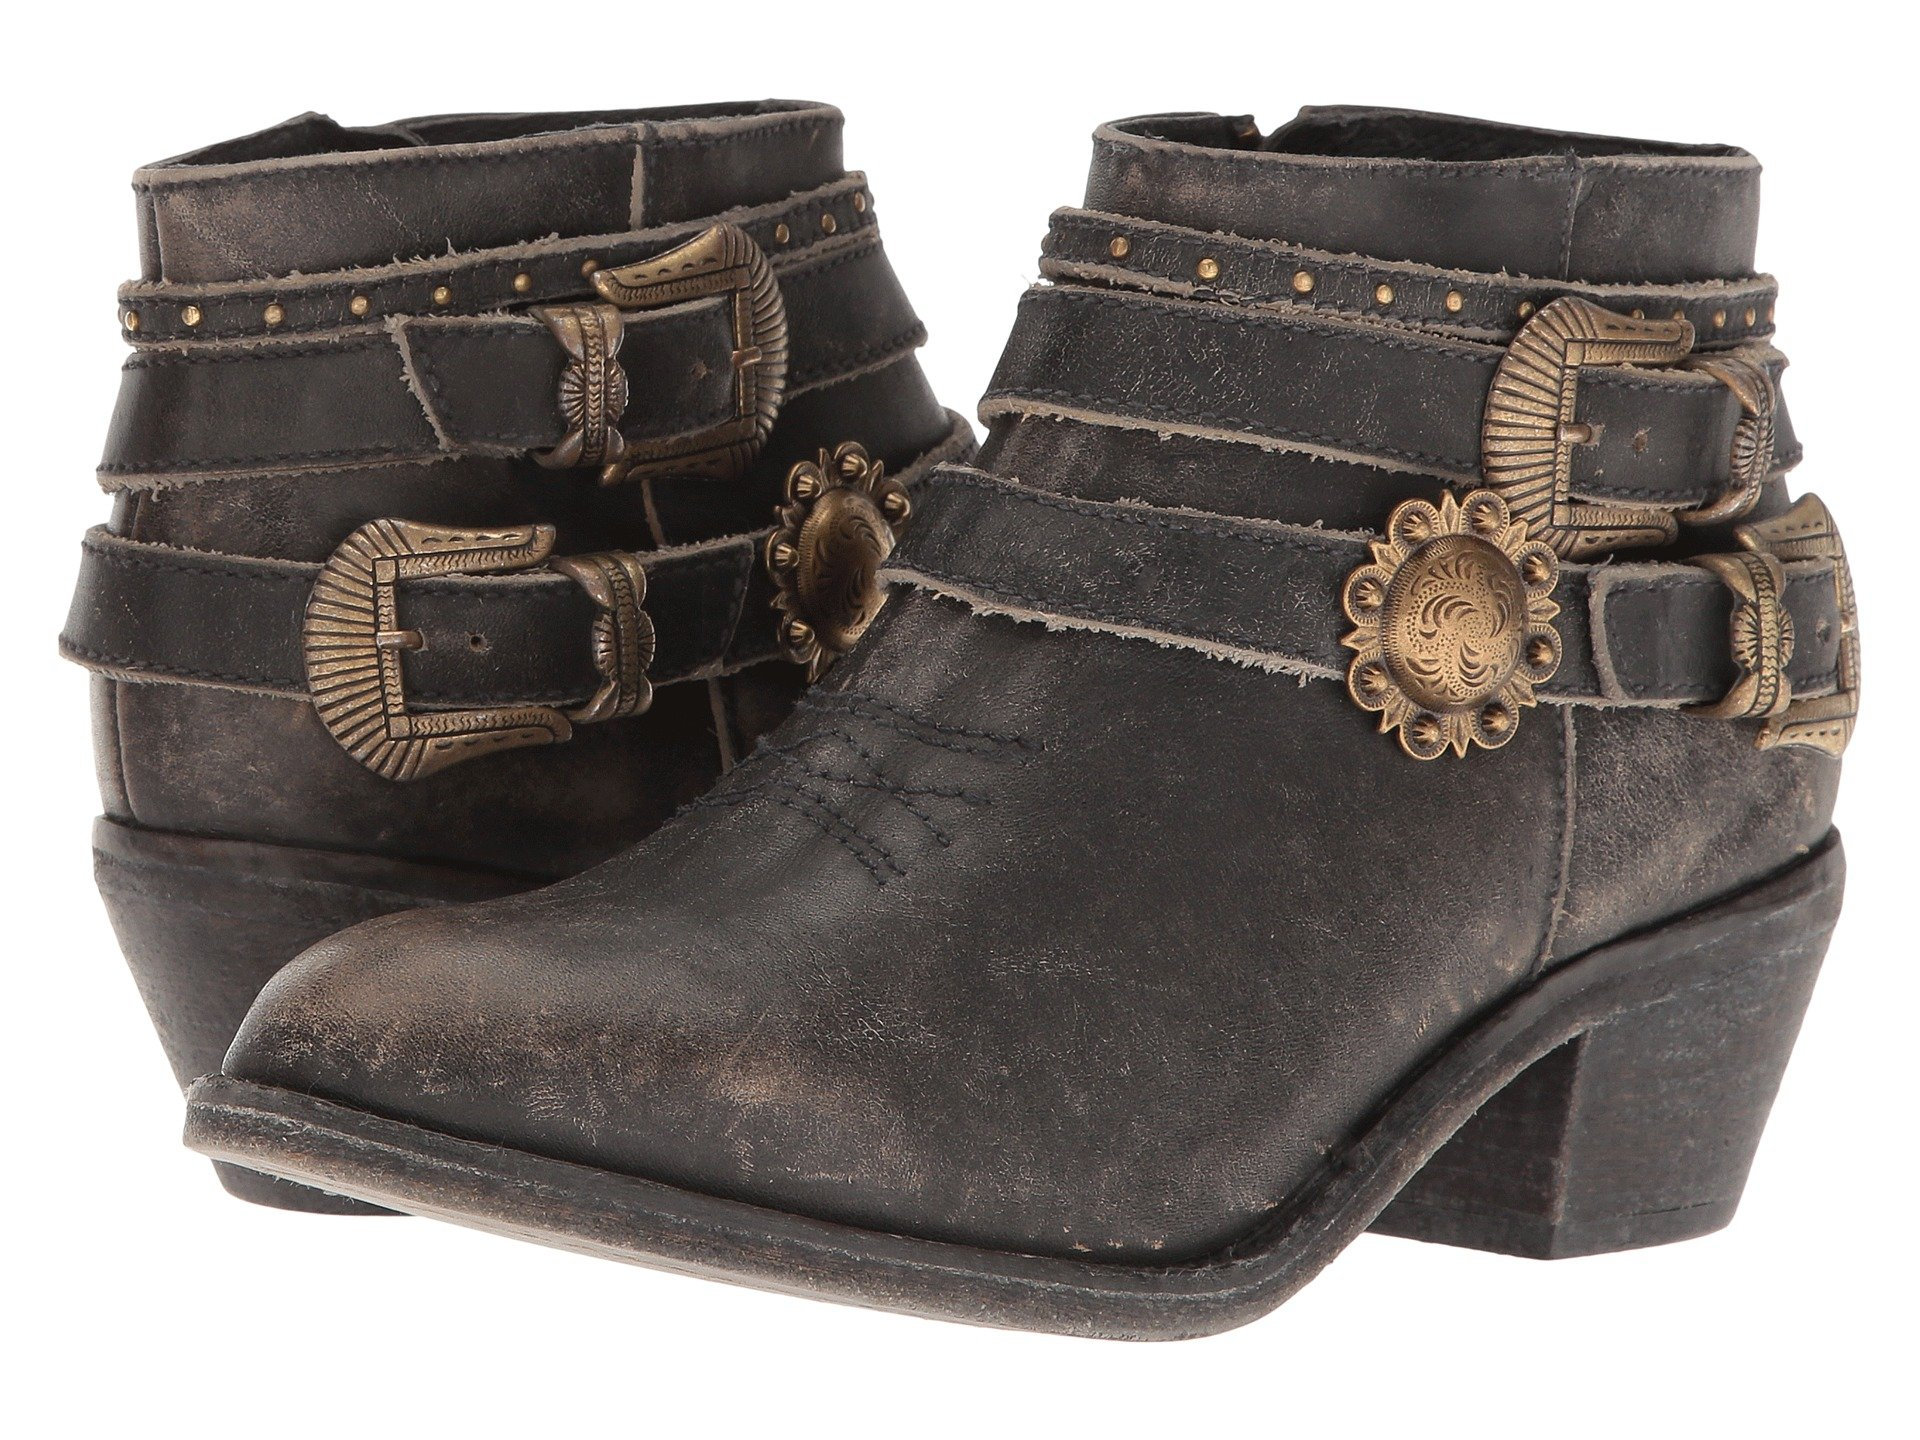 CORRAL Womens P5101 Distressed Black Multi-Straps Shortie Boots (P5101-LD)